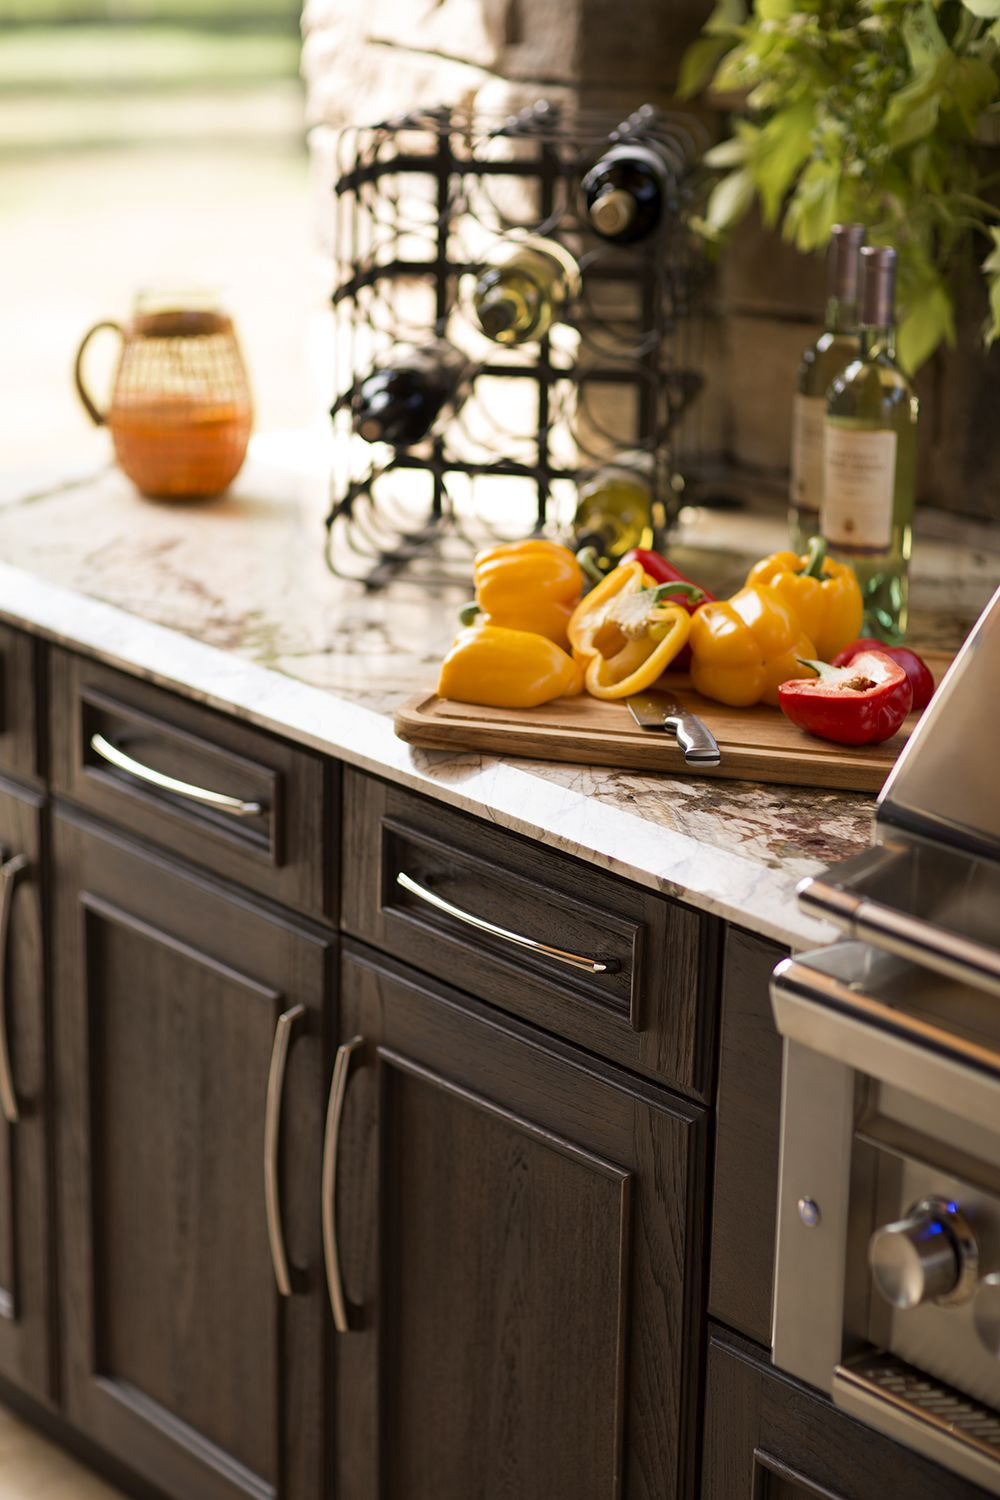 trex outdoor kitchens features customizable cabinets that provide storage for utensils and food on outdoor kitchen essentials id=76681